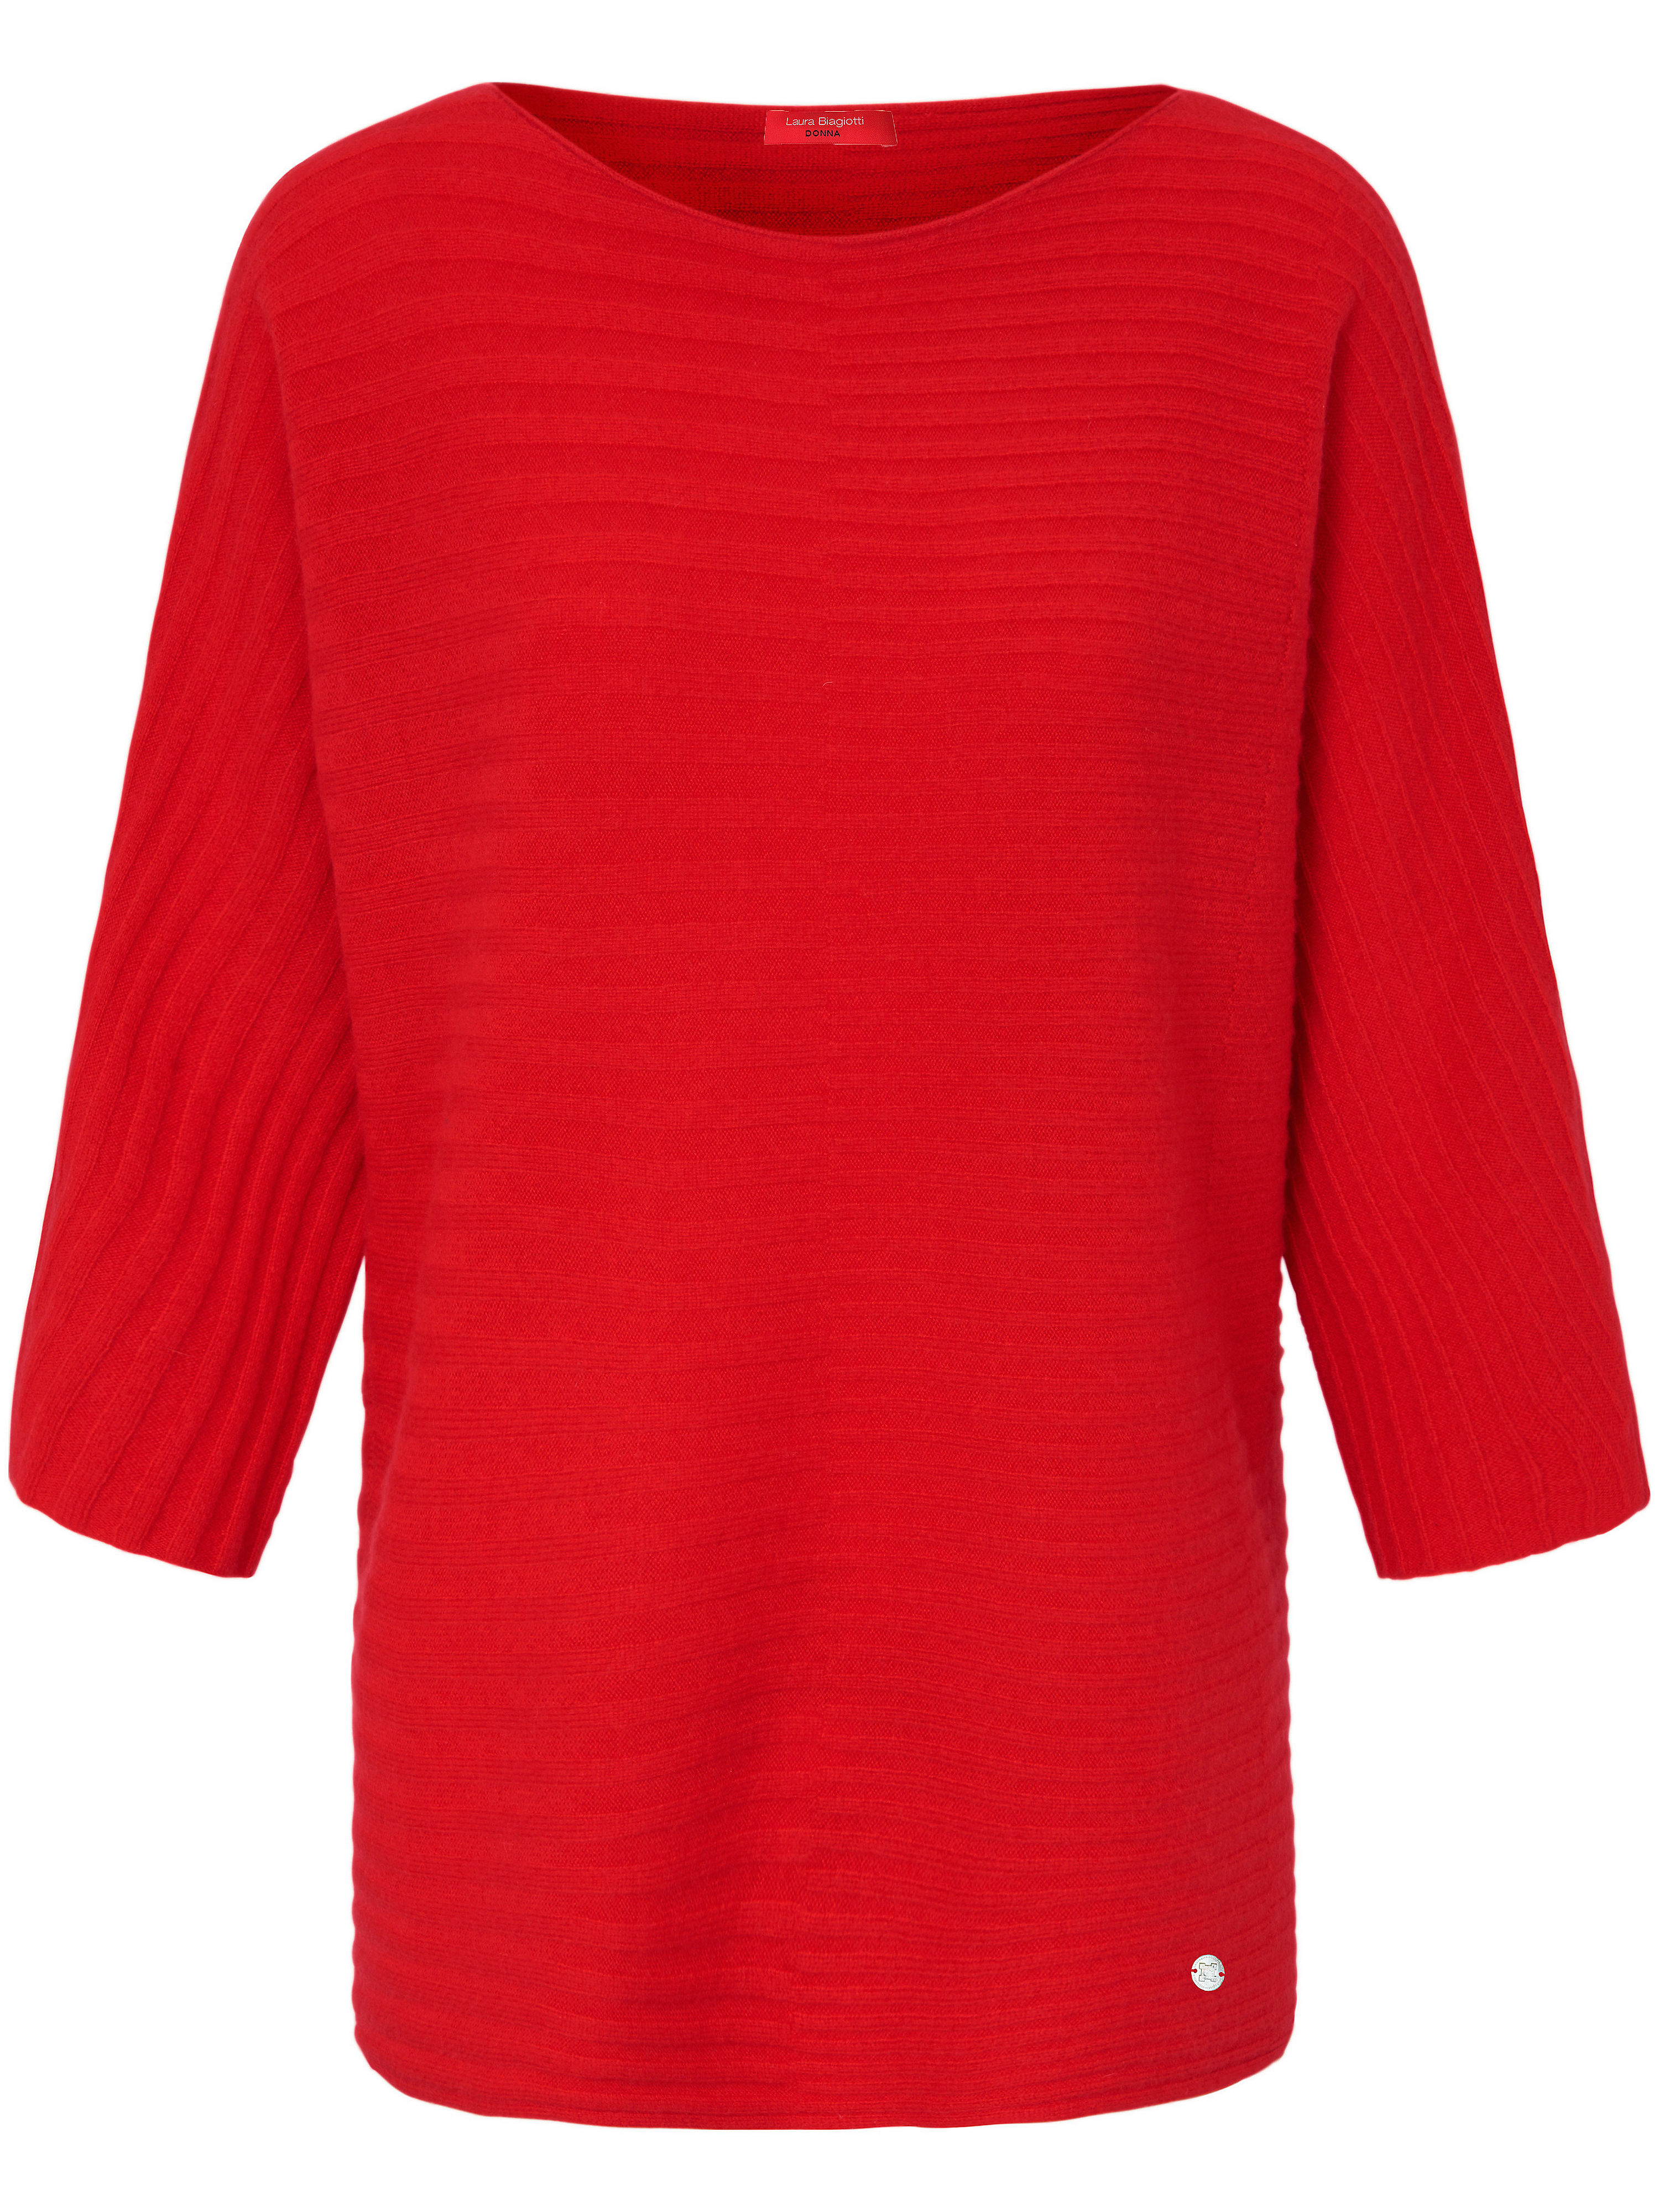 Le pull 100% cachemire manches 3/4  Laura Biagiotti Donna rouge